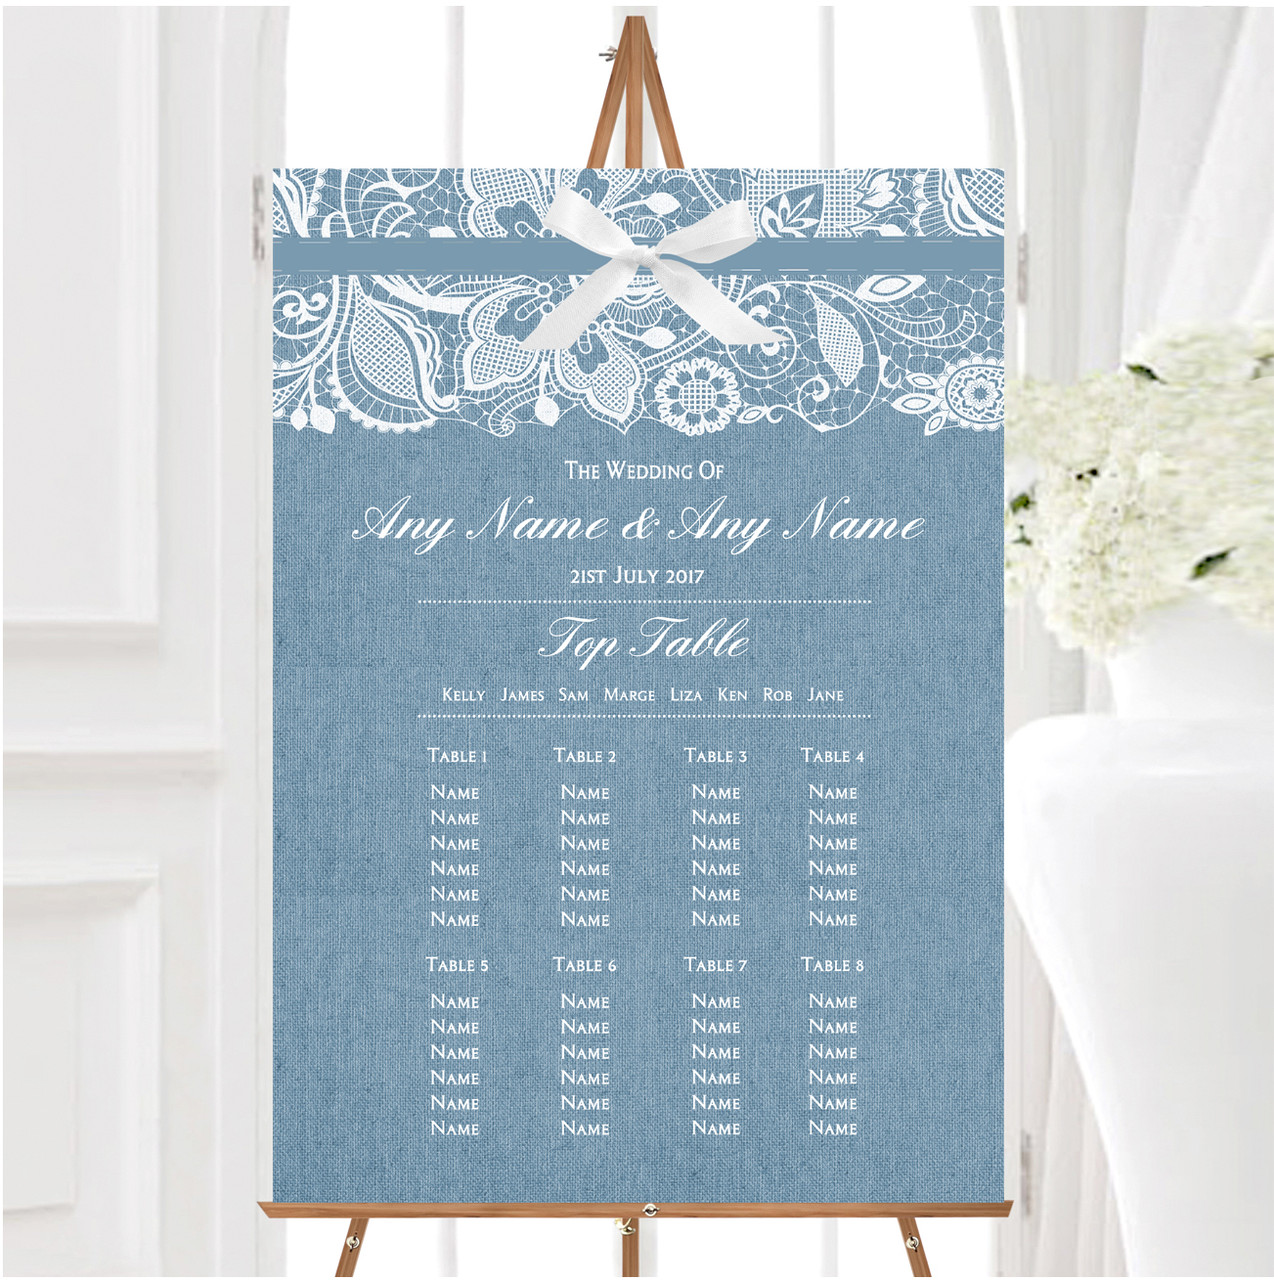 Wohndeko Online Https://www.rateshop.ca/photos-online-personalised-wedding-sign-blue-burlap-venue-decorations-801494/